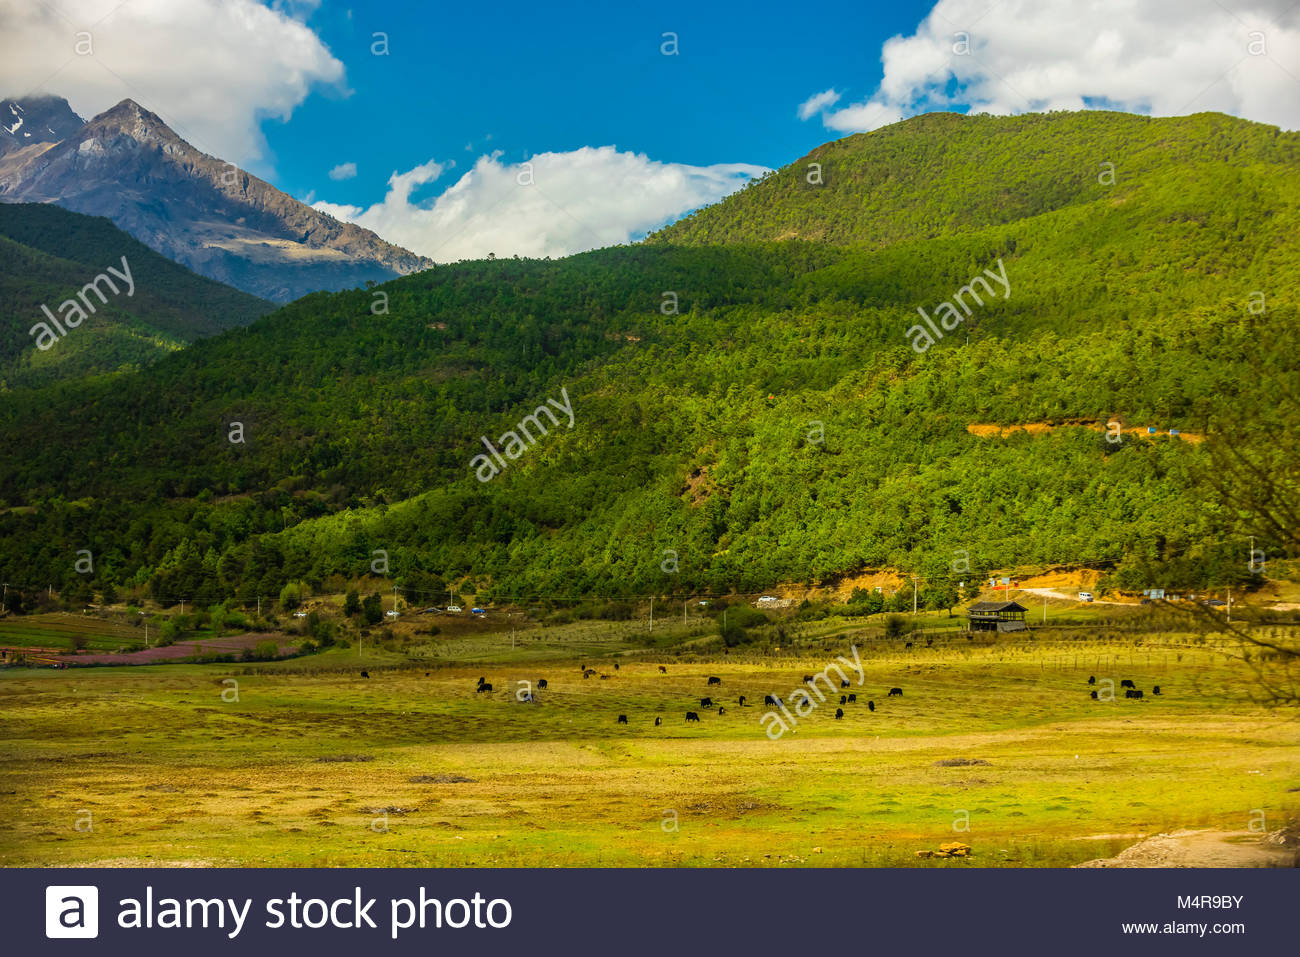 Yaks grazing on a mountainside near Lijiang, Yunnan Province, China. - Stock Image